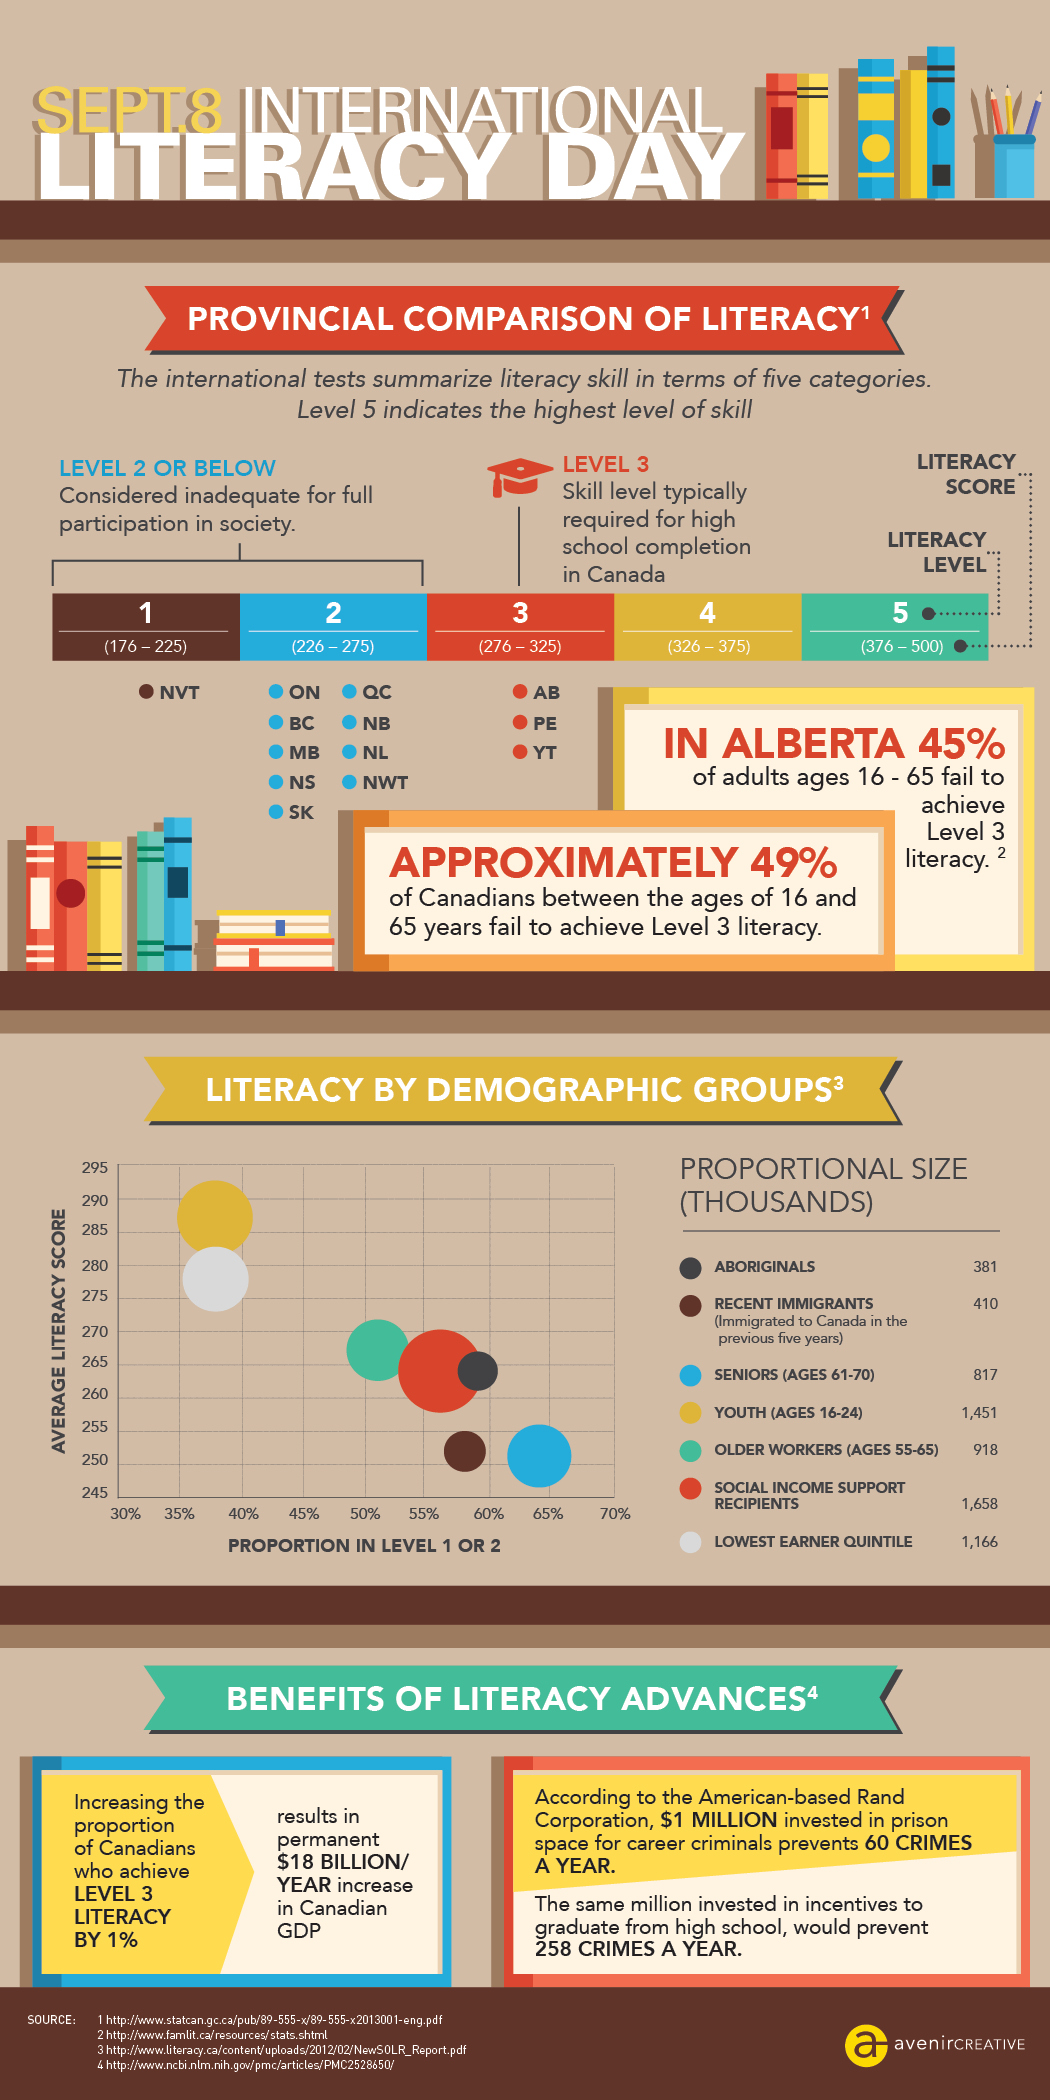 Avenircreative-Intl-Literacy-Day-Infographic.jpg